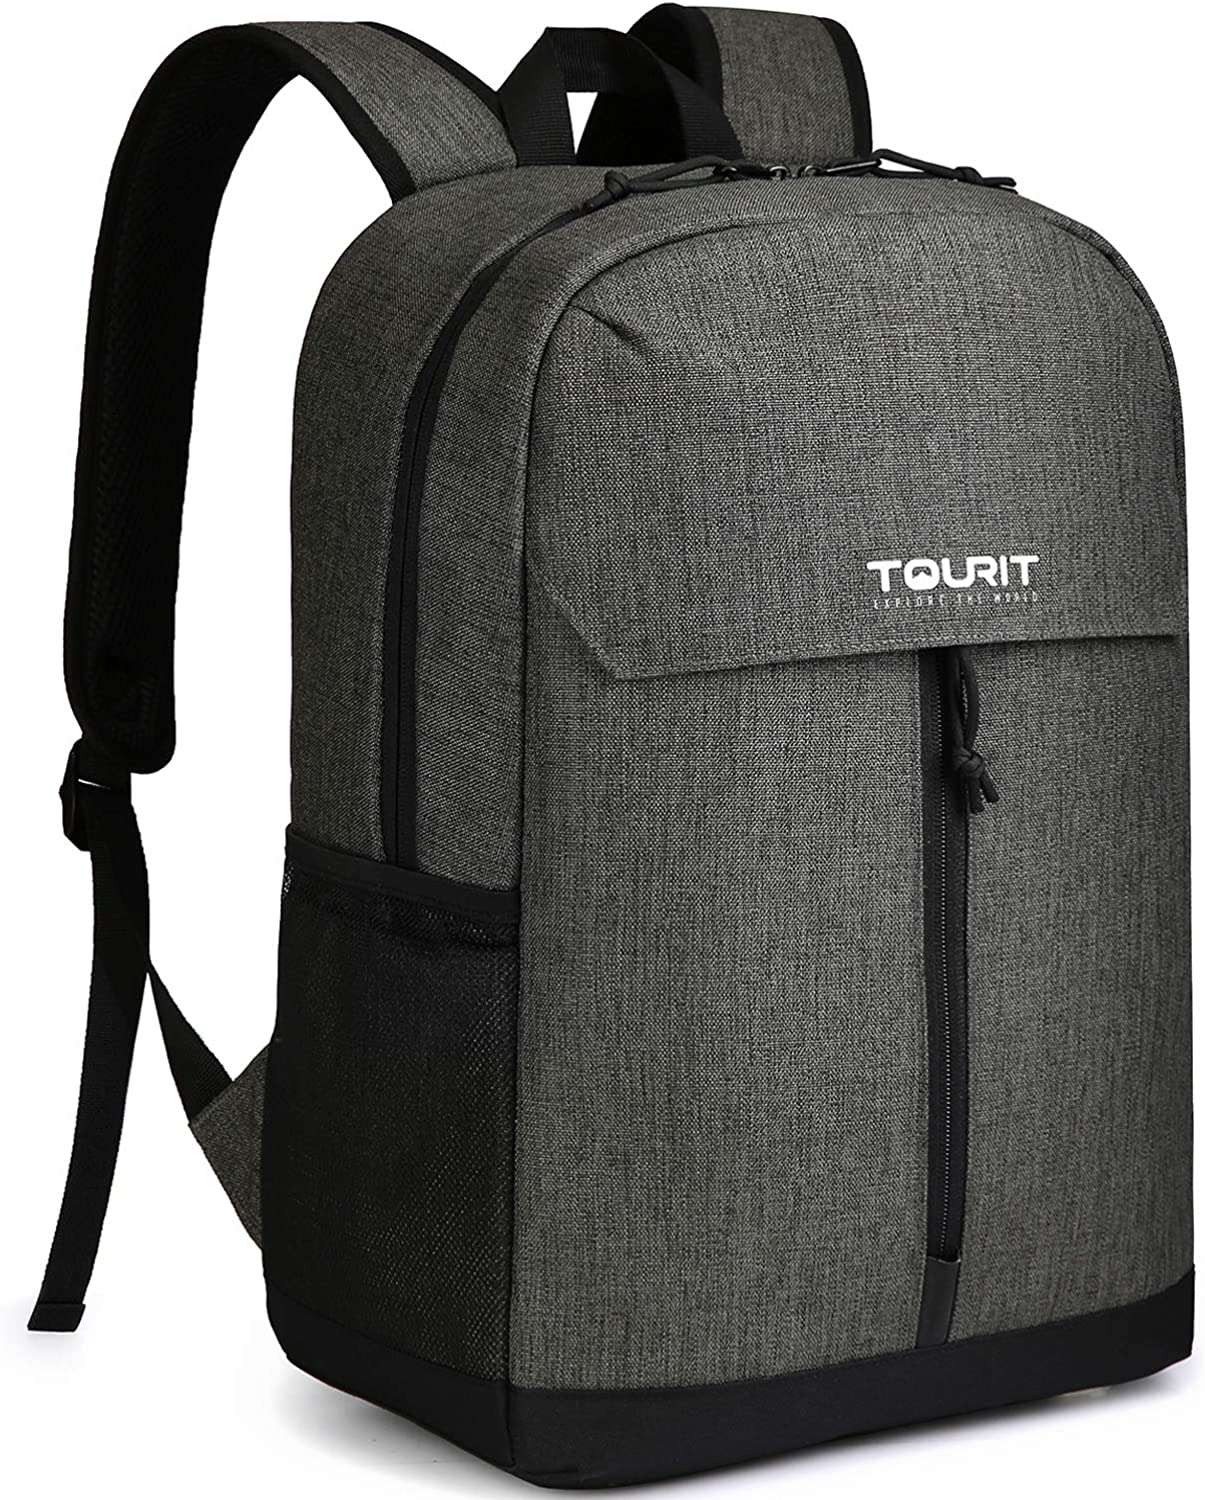 TOURIT Backpack Cooler Insulated Leak Proof 30 Cans Lightweight Cooler Backpack Waterproof Large Capacity for Men Women to Picnics Camping Hiking Beach Park or Day Trips